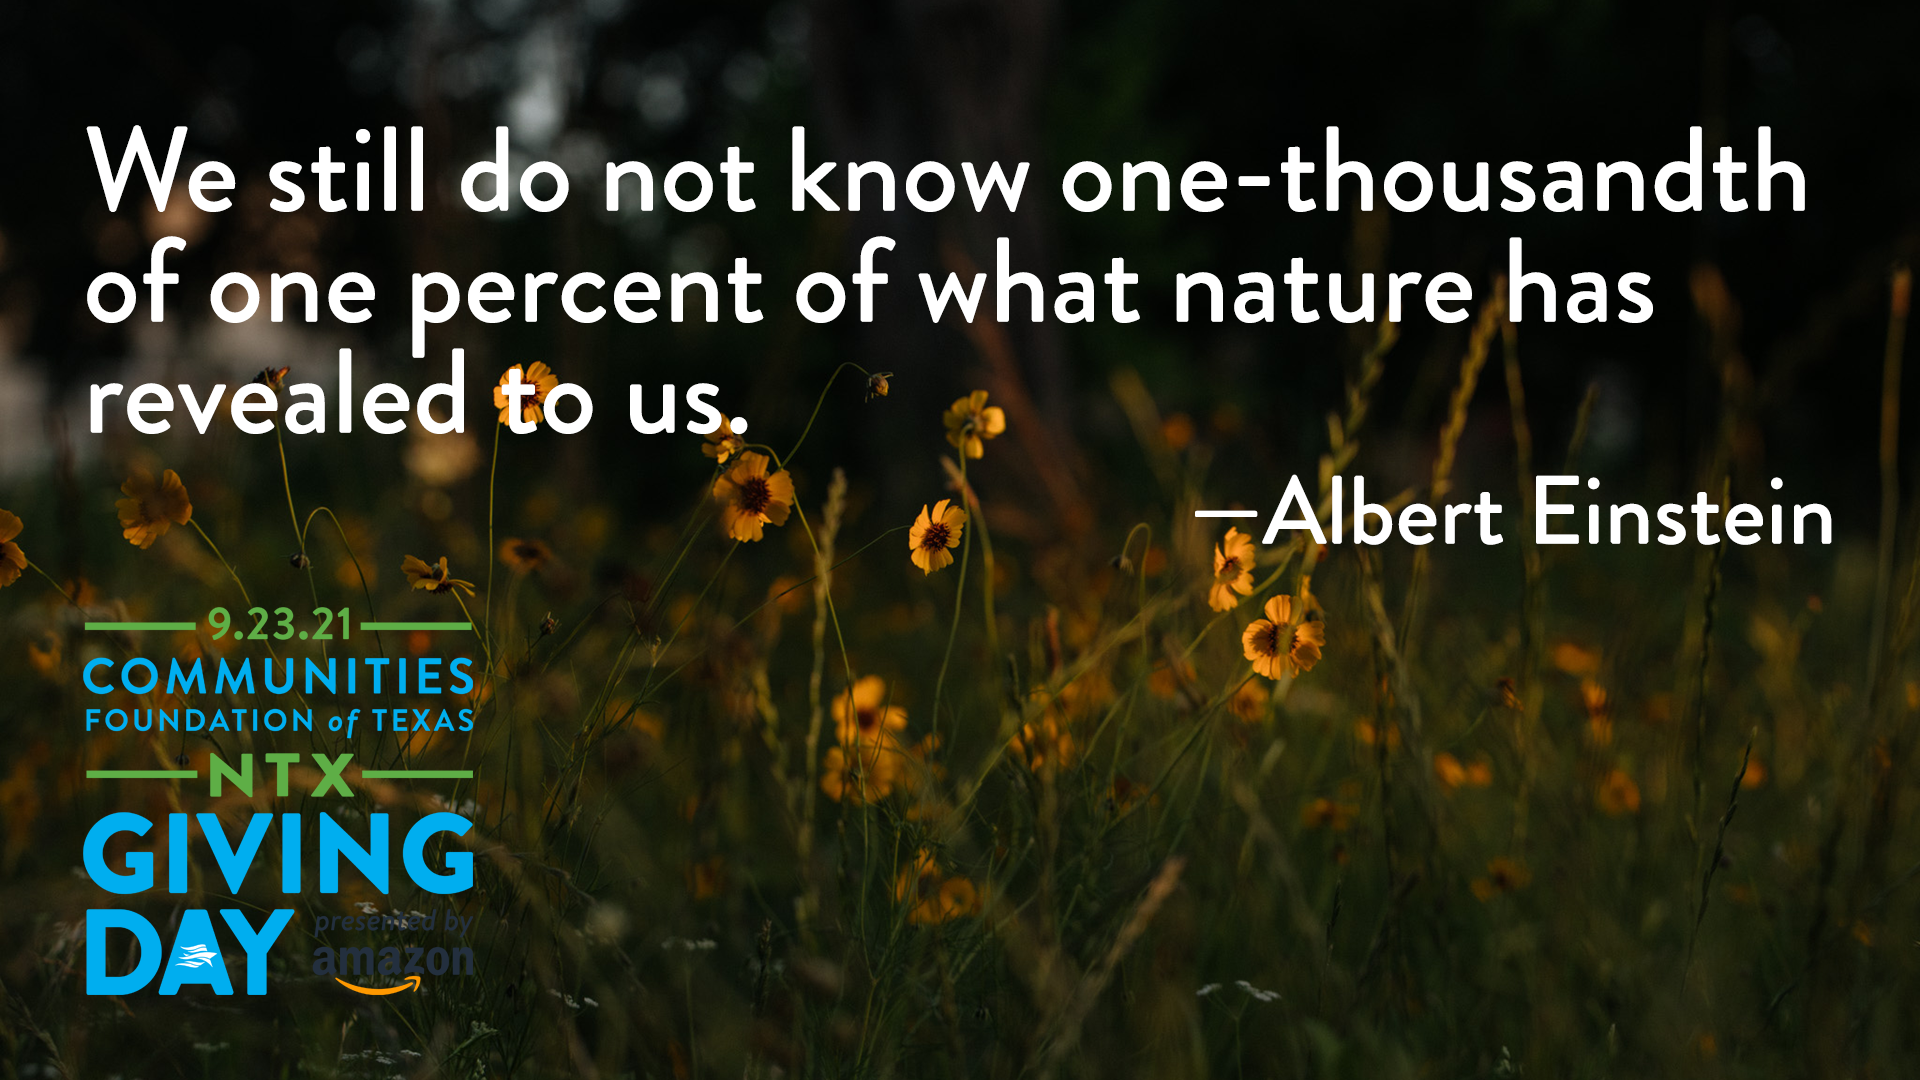 We still do not know one-thousandth of one percent of what nature has revealed to us